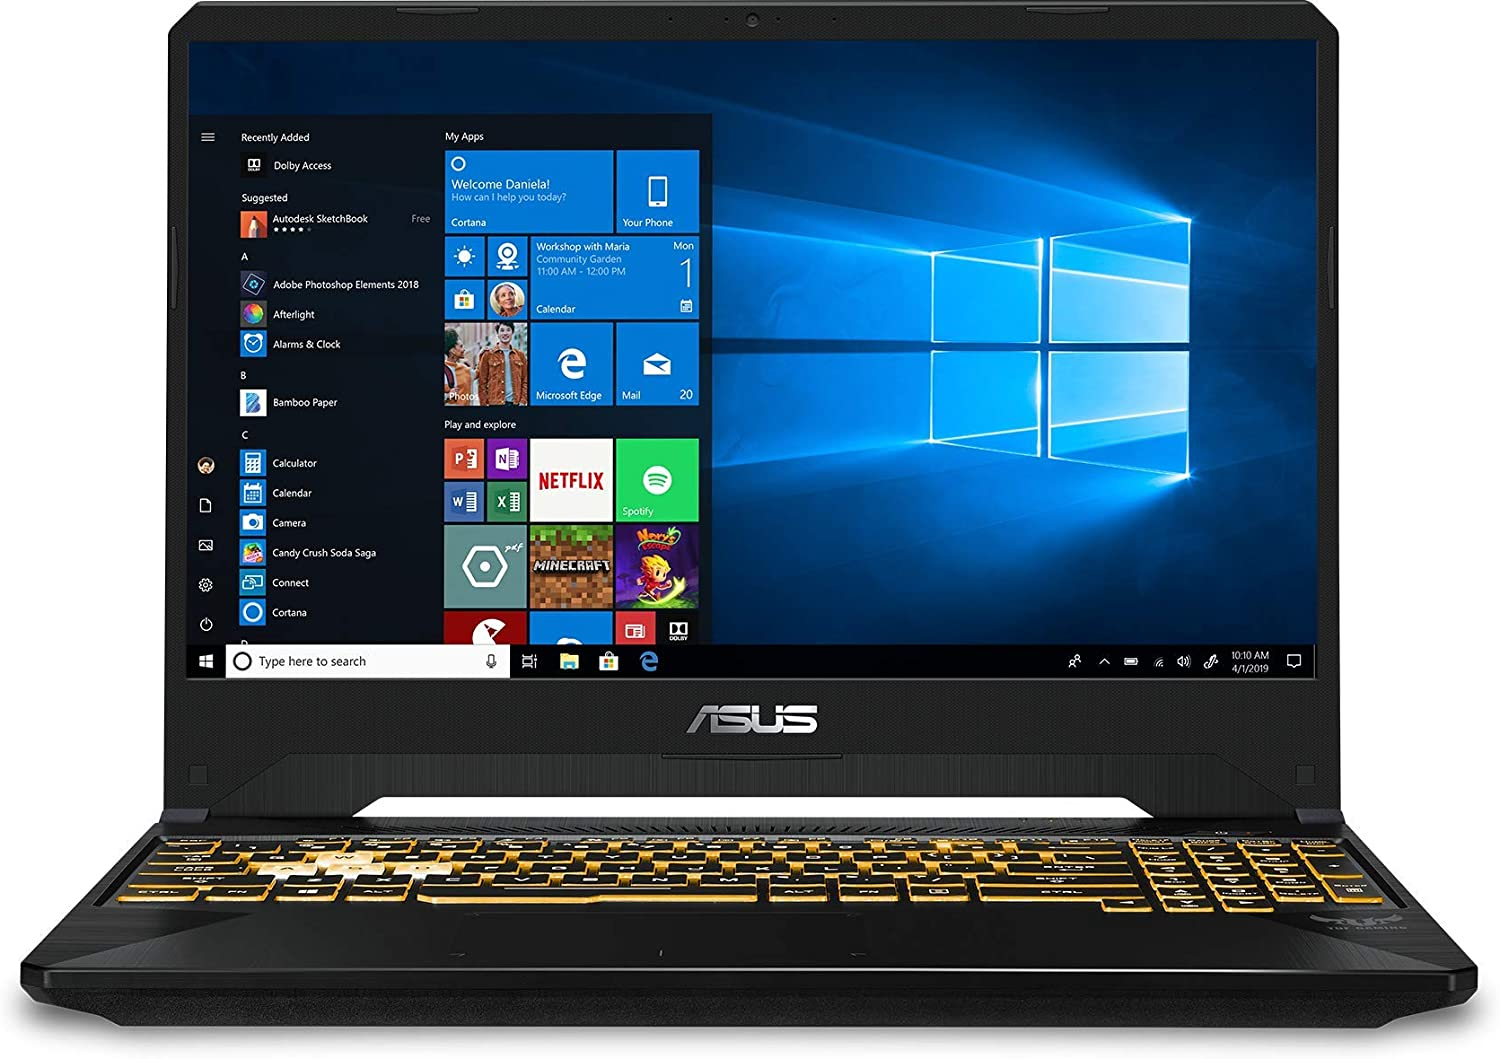 "2020 Asus TUF 15.6"" FHD VR Ready Gaming Laptop Computer/ Intel Hexa-Core i7-8750H up to 4.10GHz/ 16GB DDR4 RAM/ 1TB HDD/ NVIDIA GeForce GTX 1050 4GB/ Backlit Keyboard/ Windows 10/ SPMOR Mouse Pad"